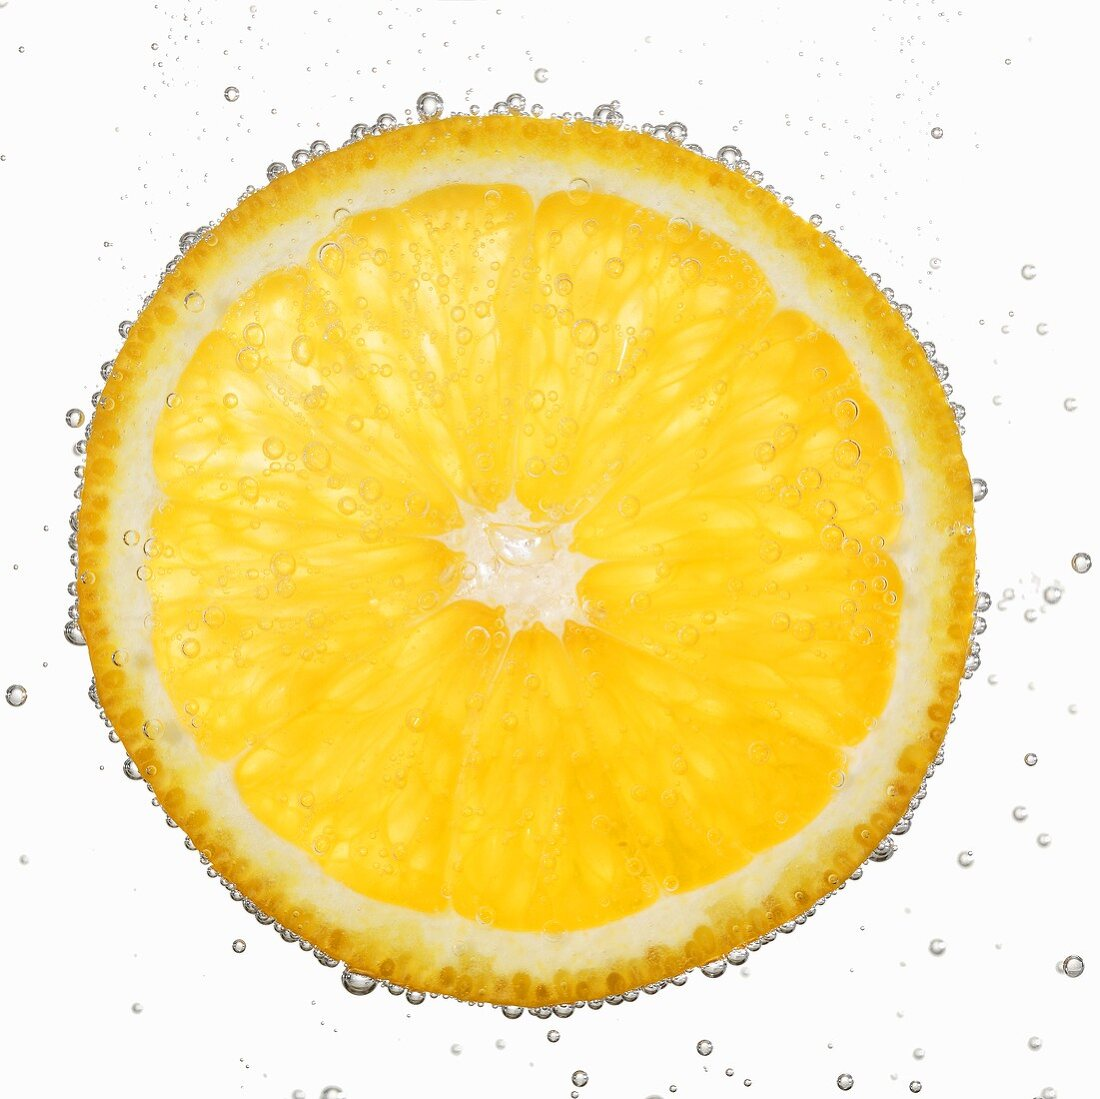 A slice of orange in water with air bubbles